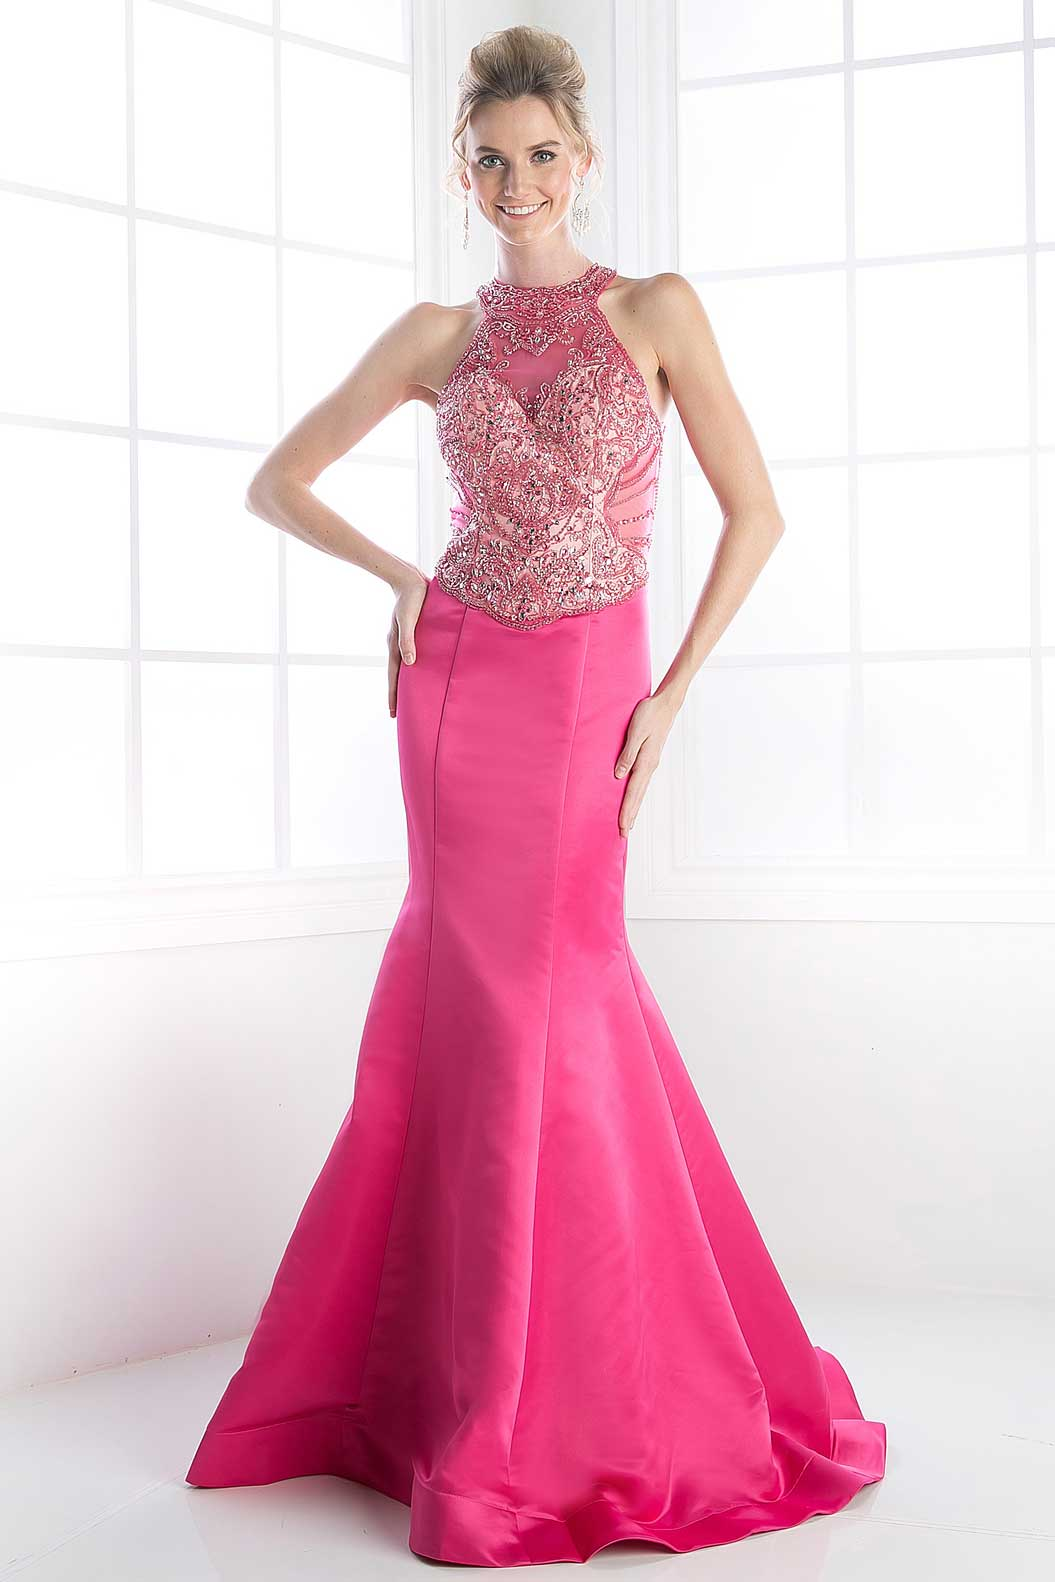 Prom Dress Consultation Sheet - galacar